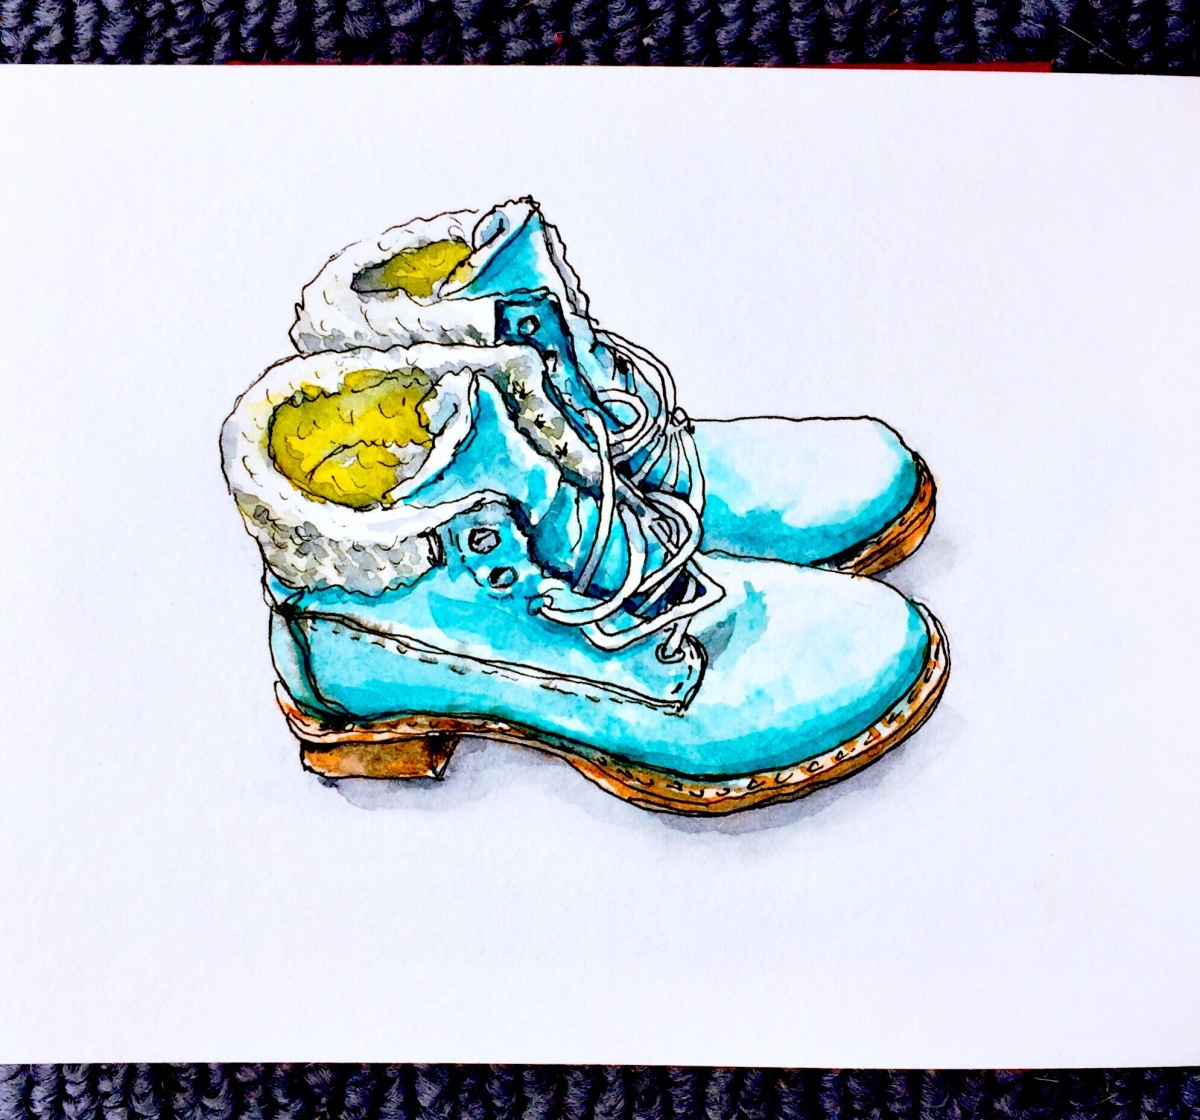 Day 3 - #WorldWatercolorGroup Winter Boots women's boots watercolor white background